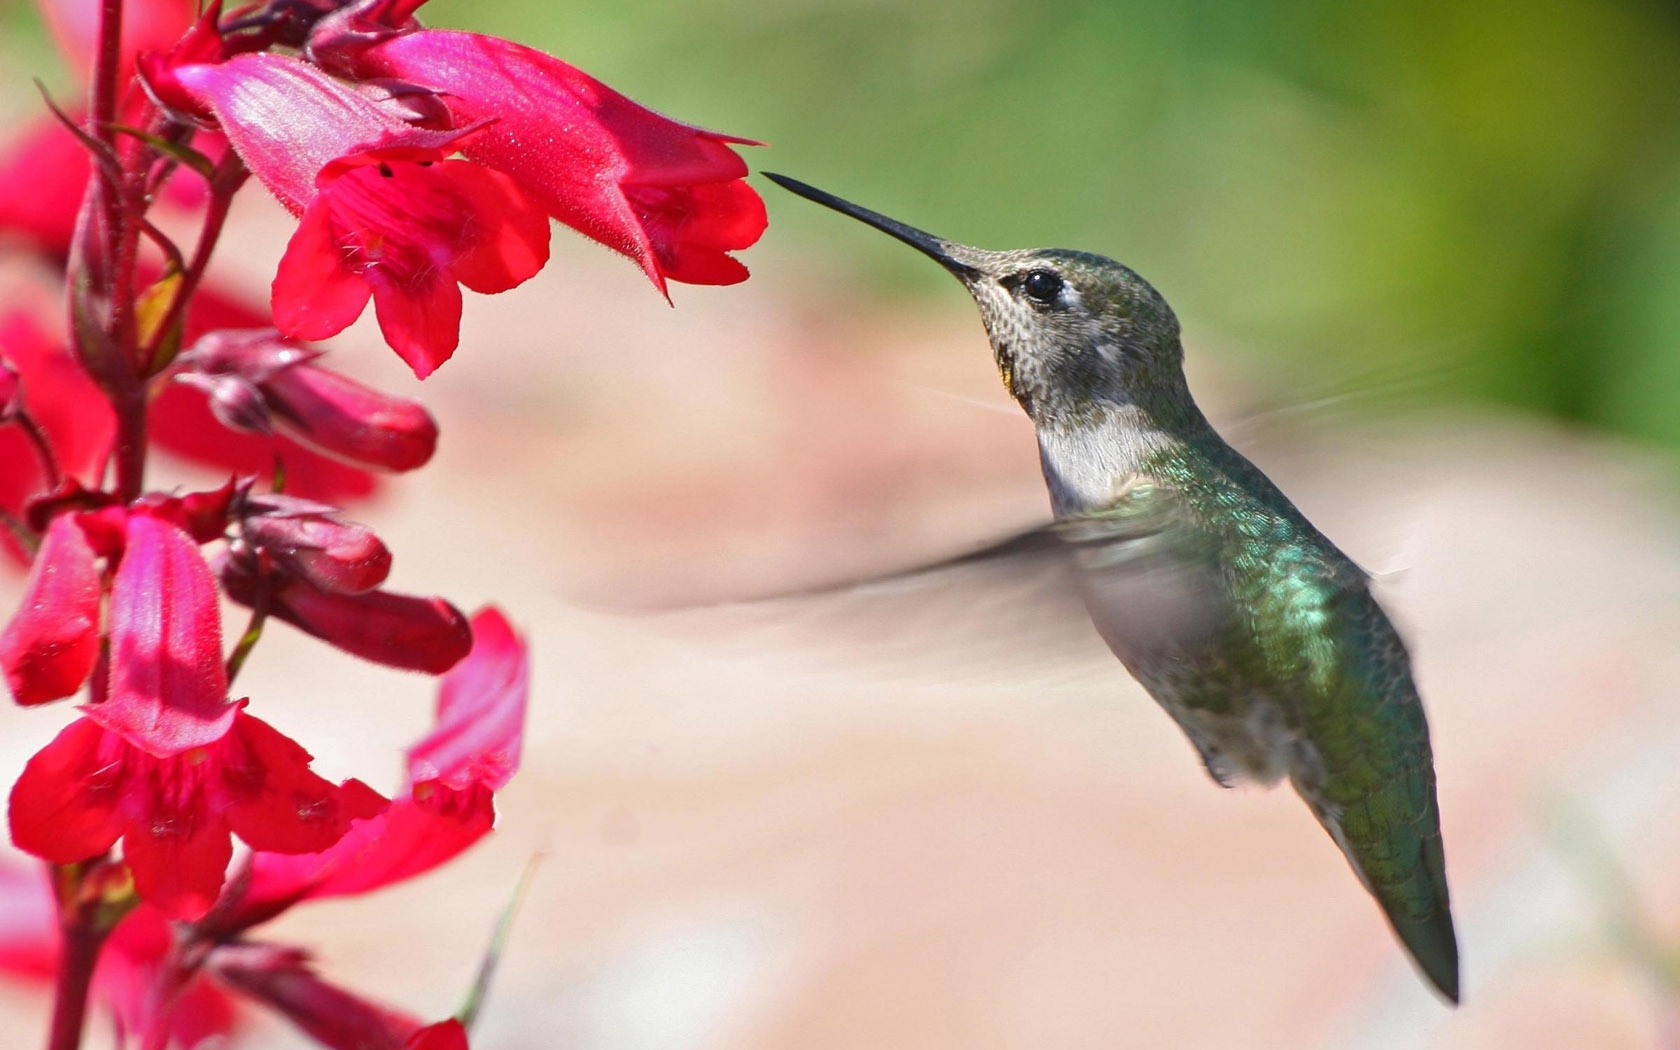 Flying Hummingbird Photo The Smallest Bird All Over The